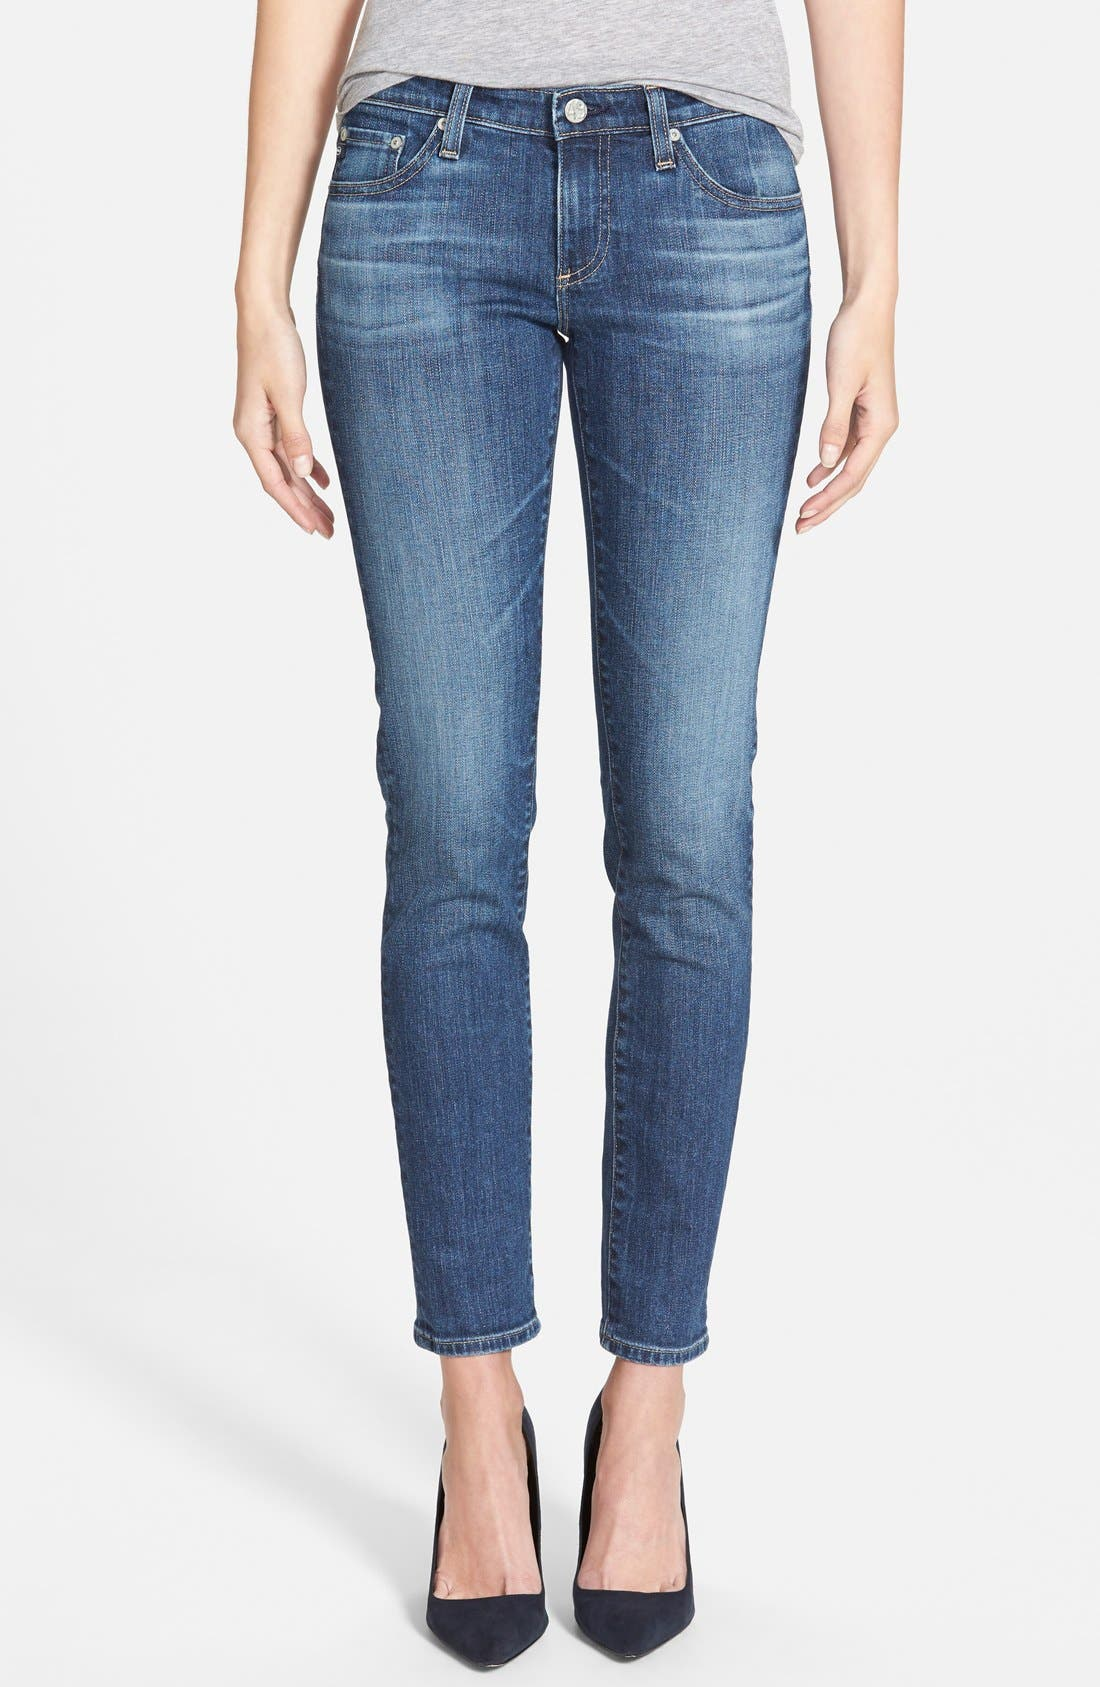 Alternate Image 1 Selected - AG 'The Stilt' Cigarette Leg Jeans (Four Year Dreamer) (Nordstrom Exclusive)